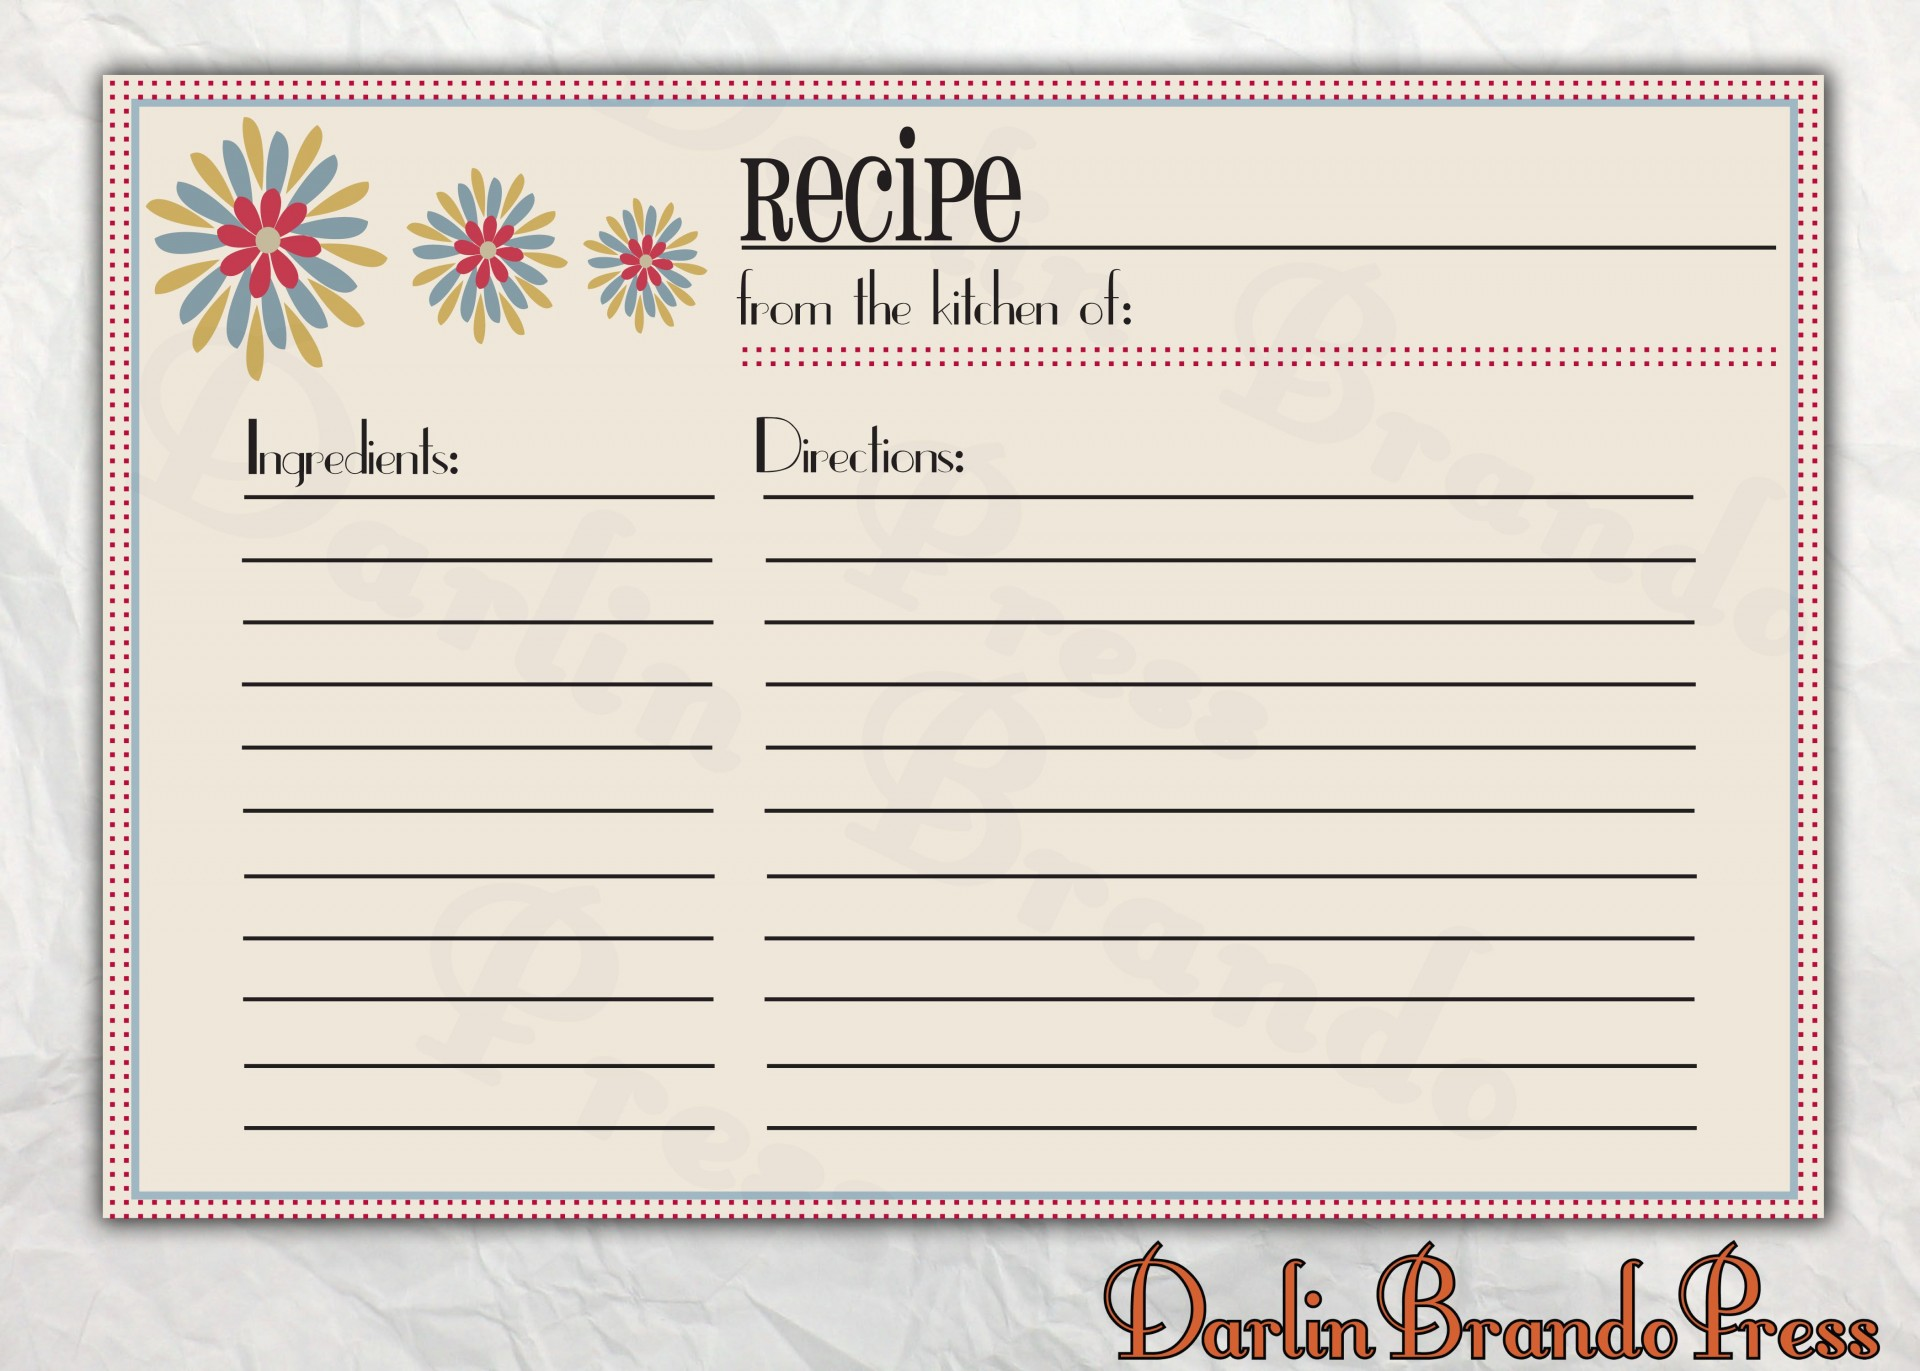 004 Wonderful Editable Recipe Card Template High Definition  Free For Microsoft Word 4x6 Page1920